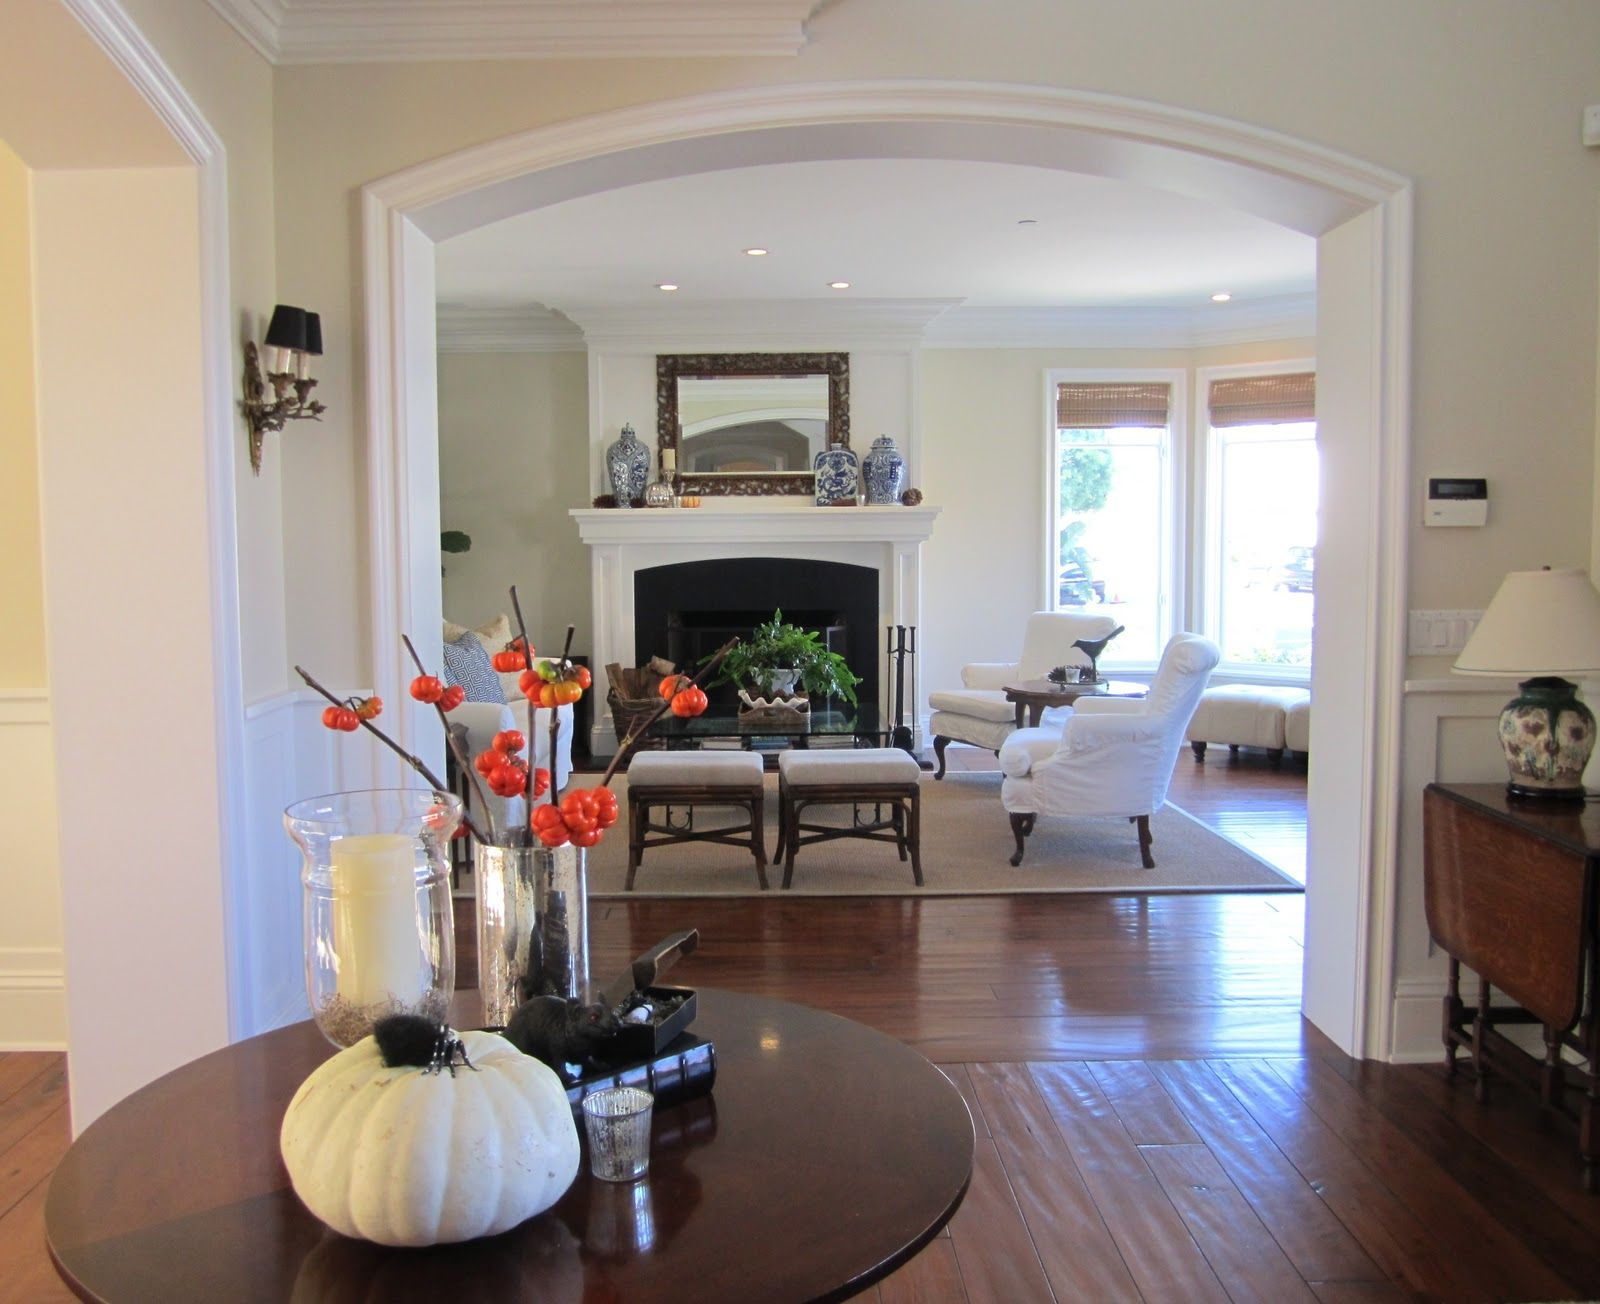 Archway Ideas Interior Newport Beach Classic Home Tour Ideas And Diy For Our Home